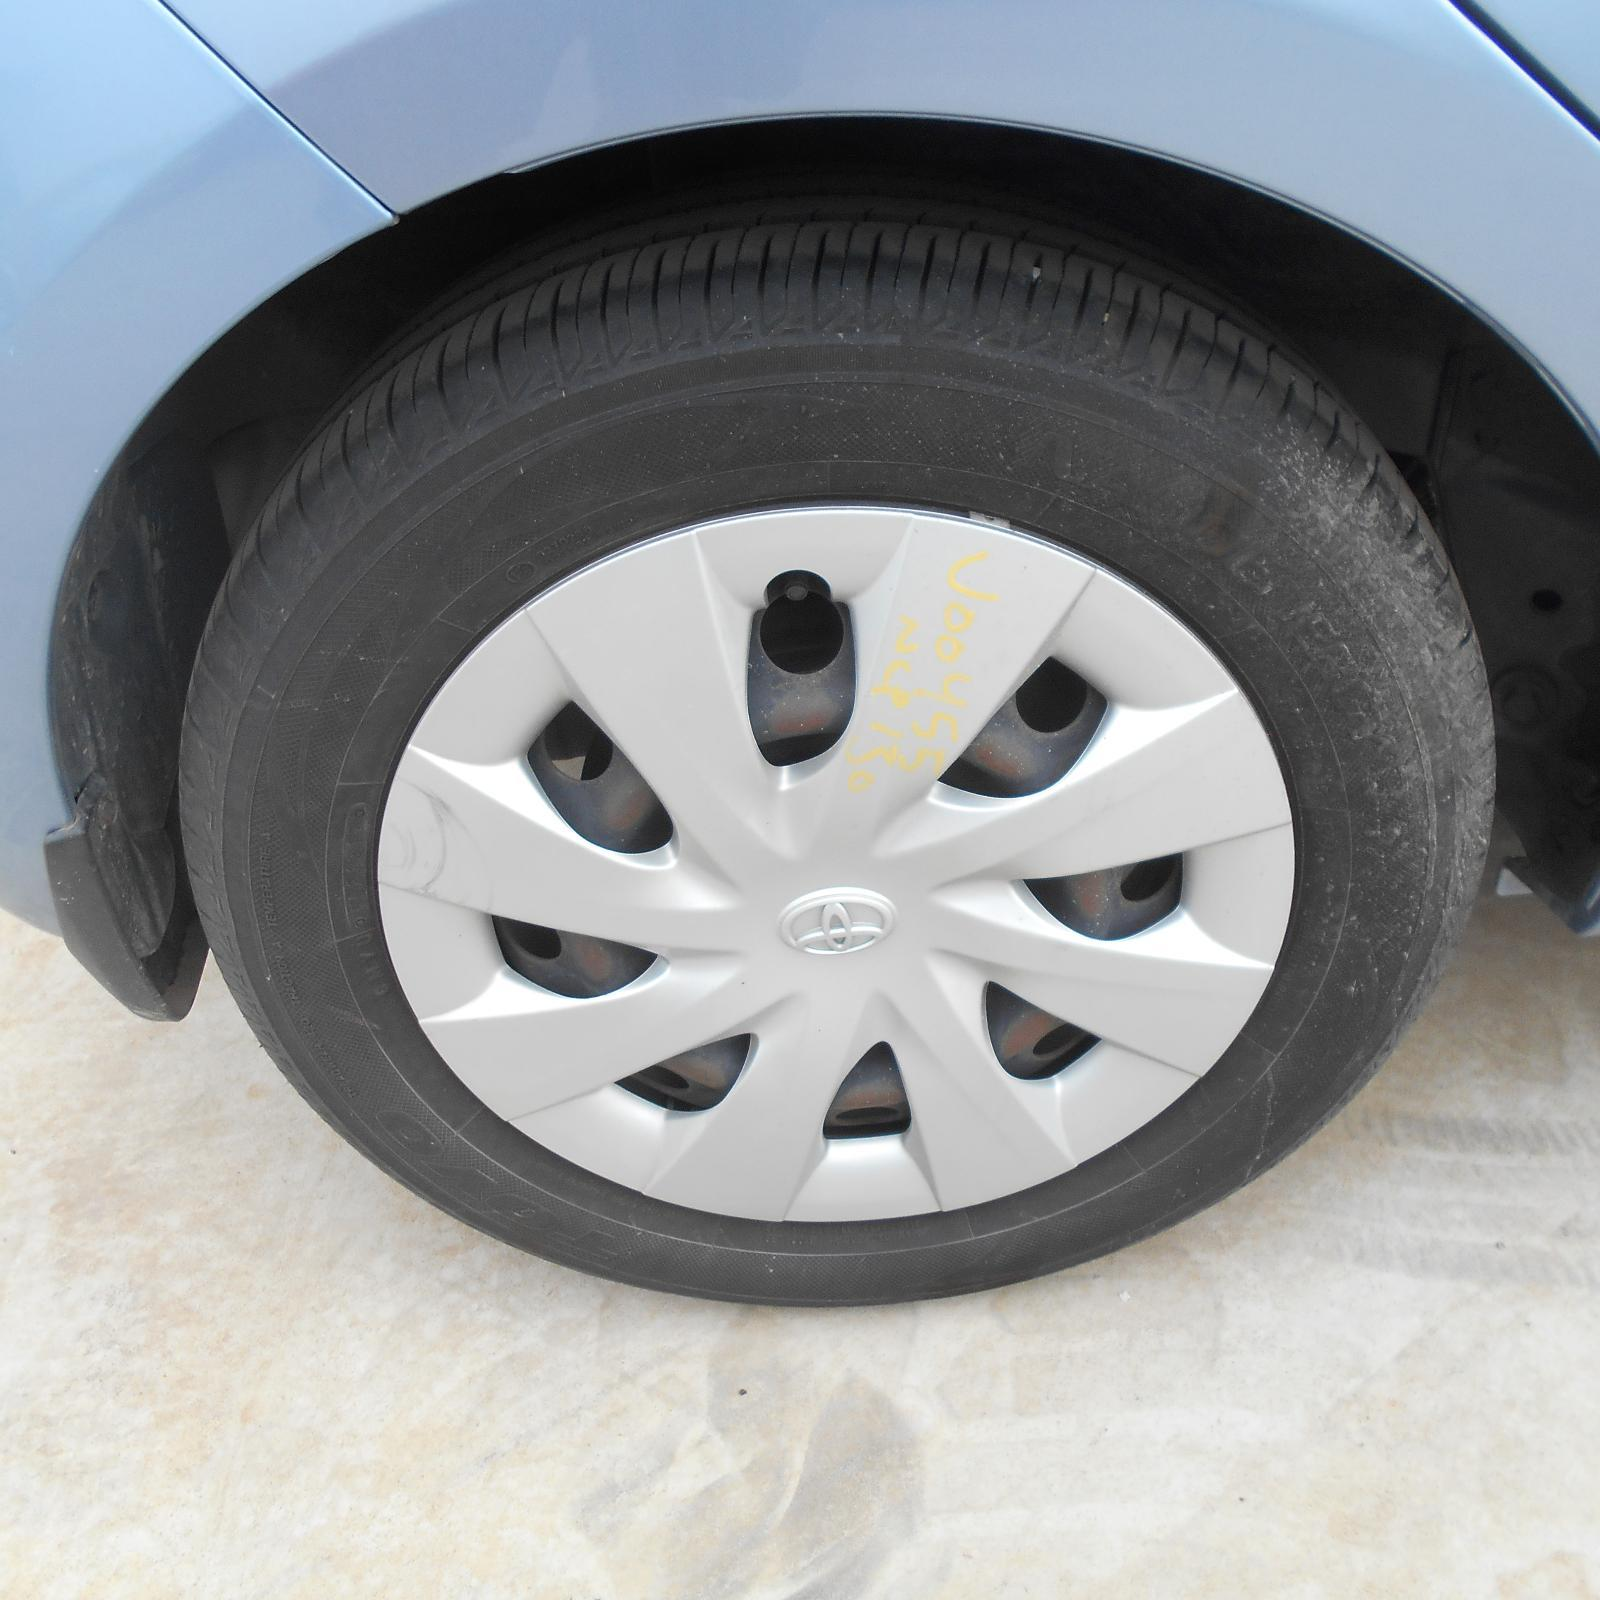 TOYOTA YARIS, Wheel Cover/Hub Cap, XP130 SERIES, 10/11-